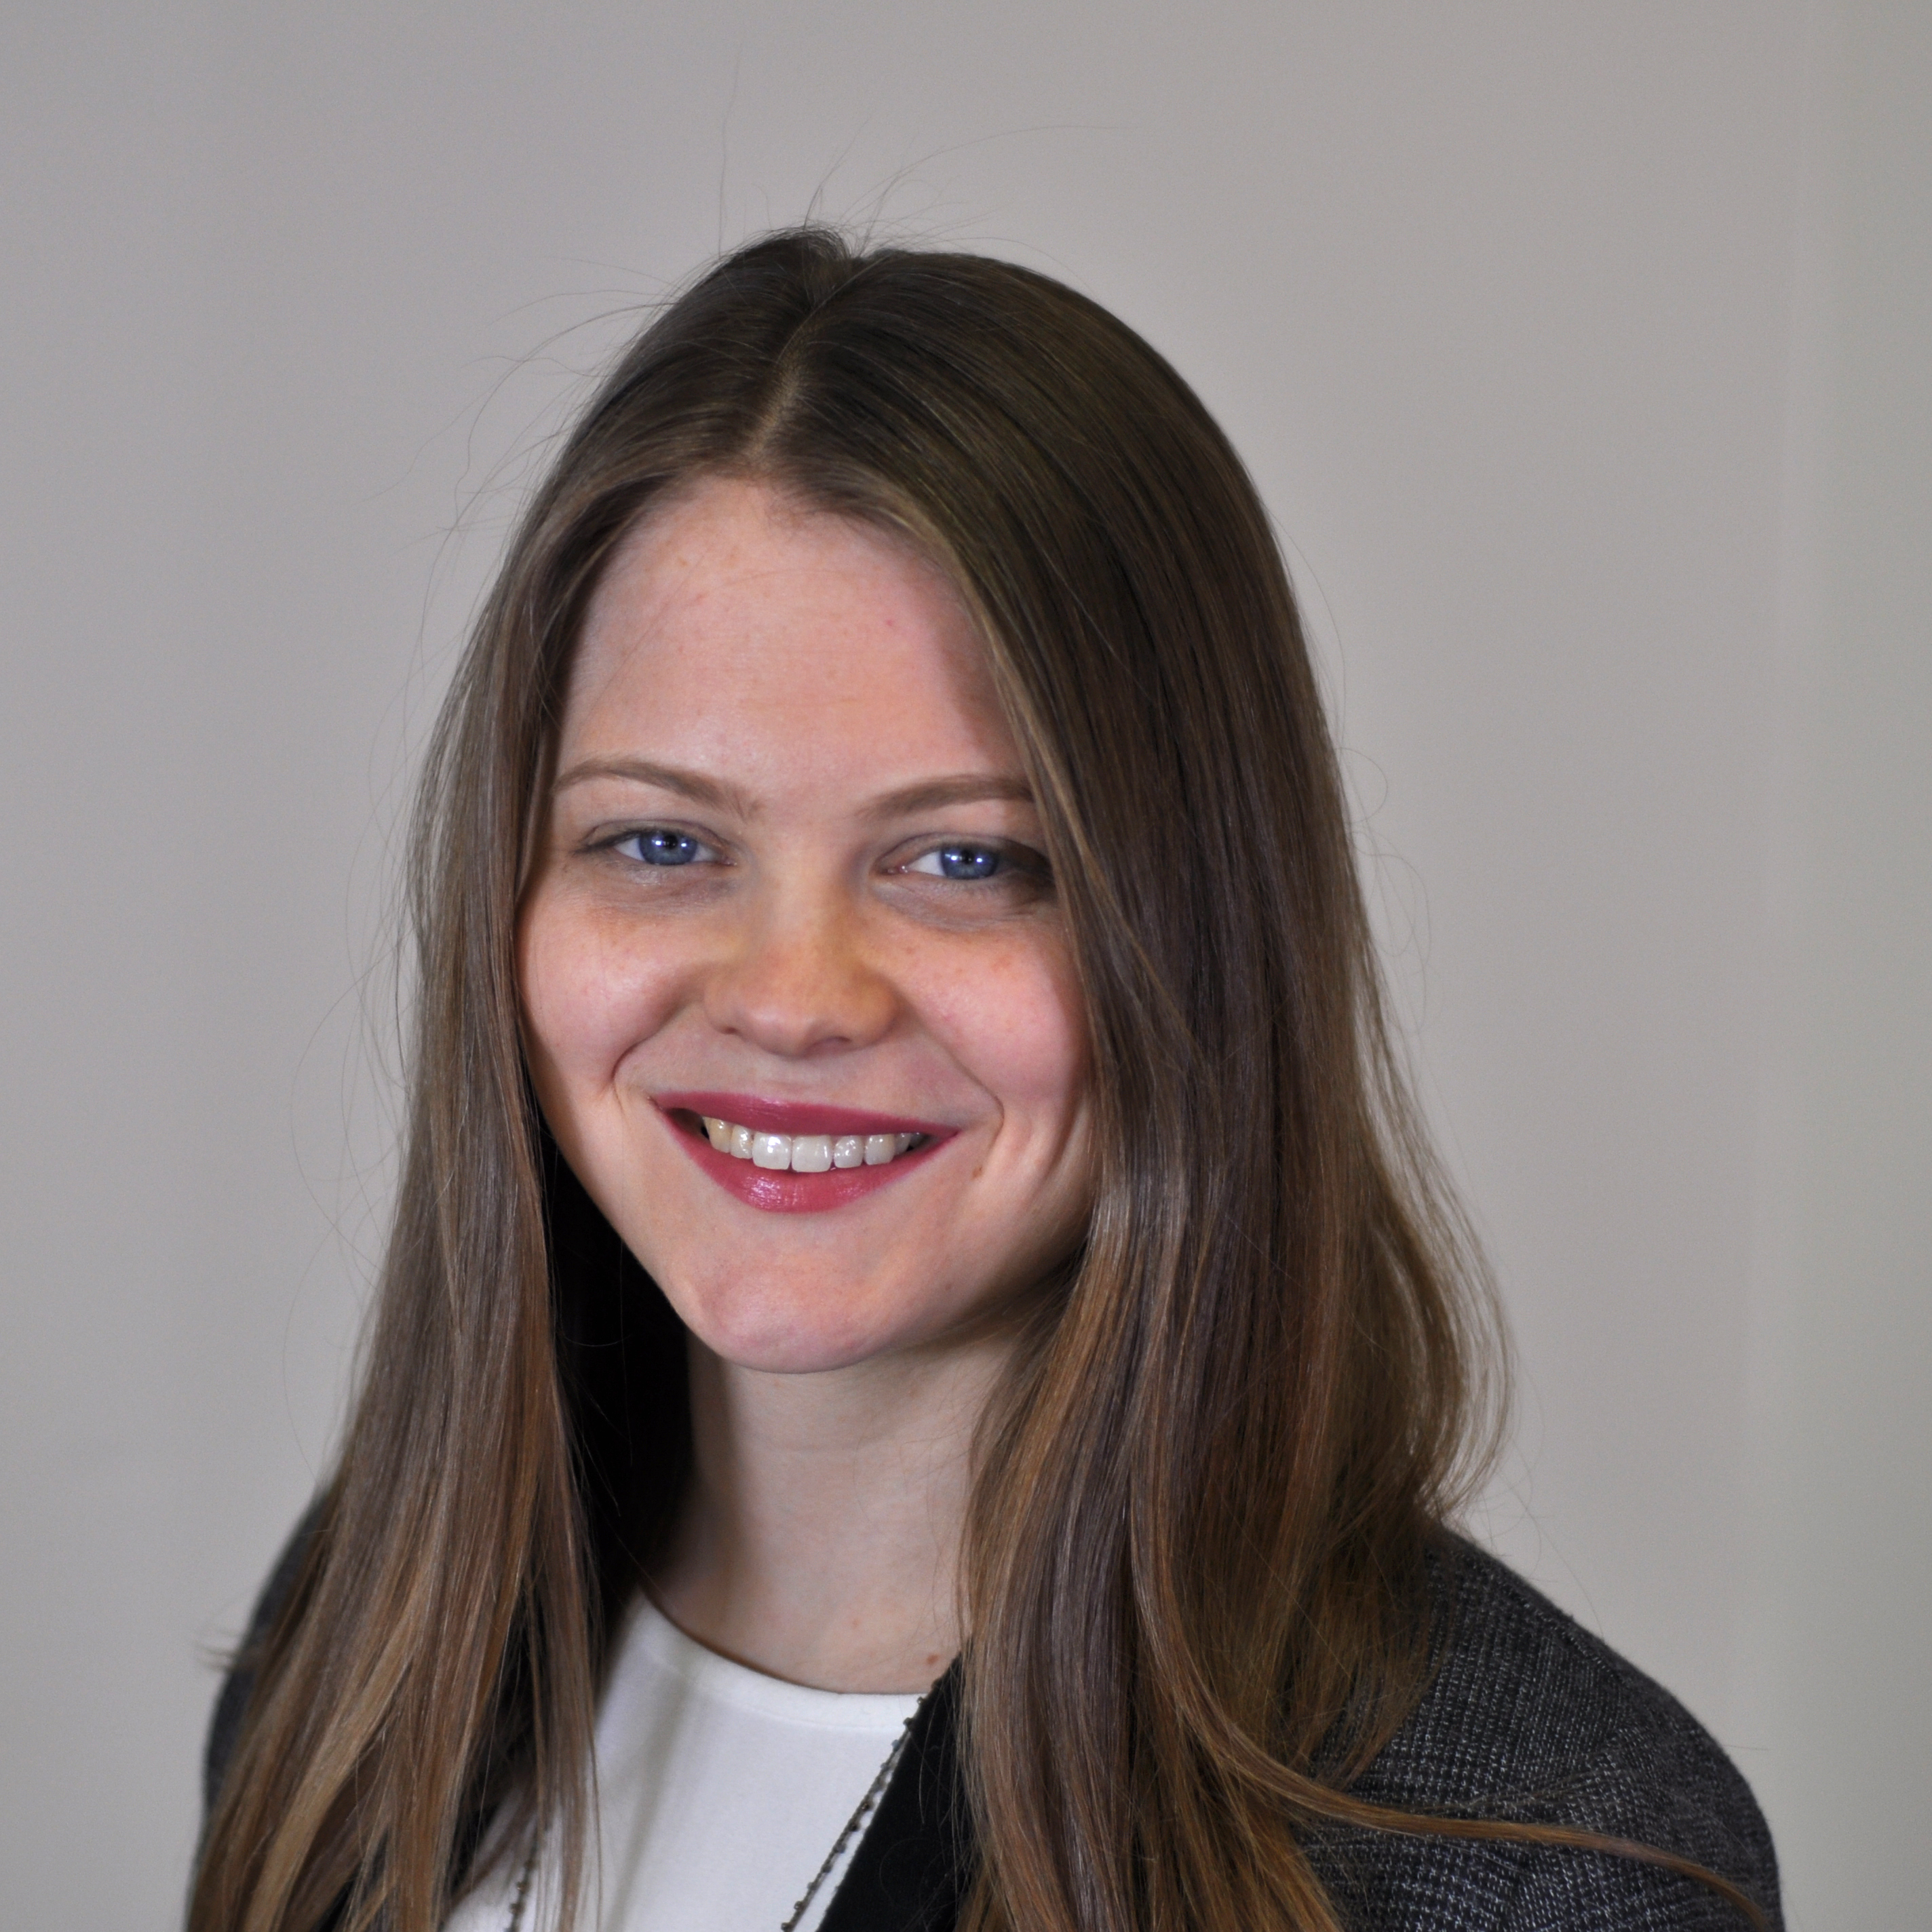 meet our staff camden coalition of healthcare providers laura buckley